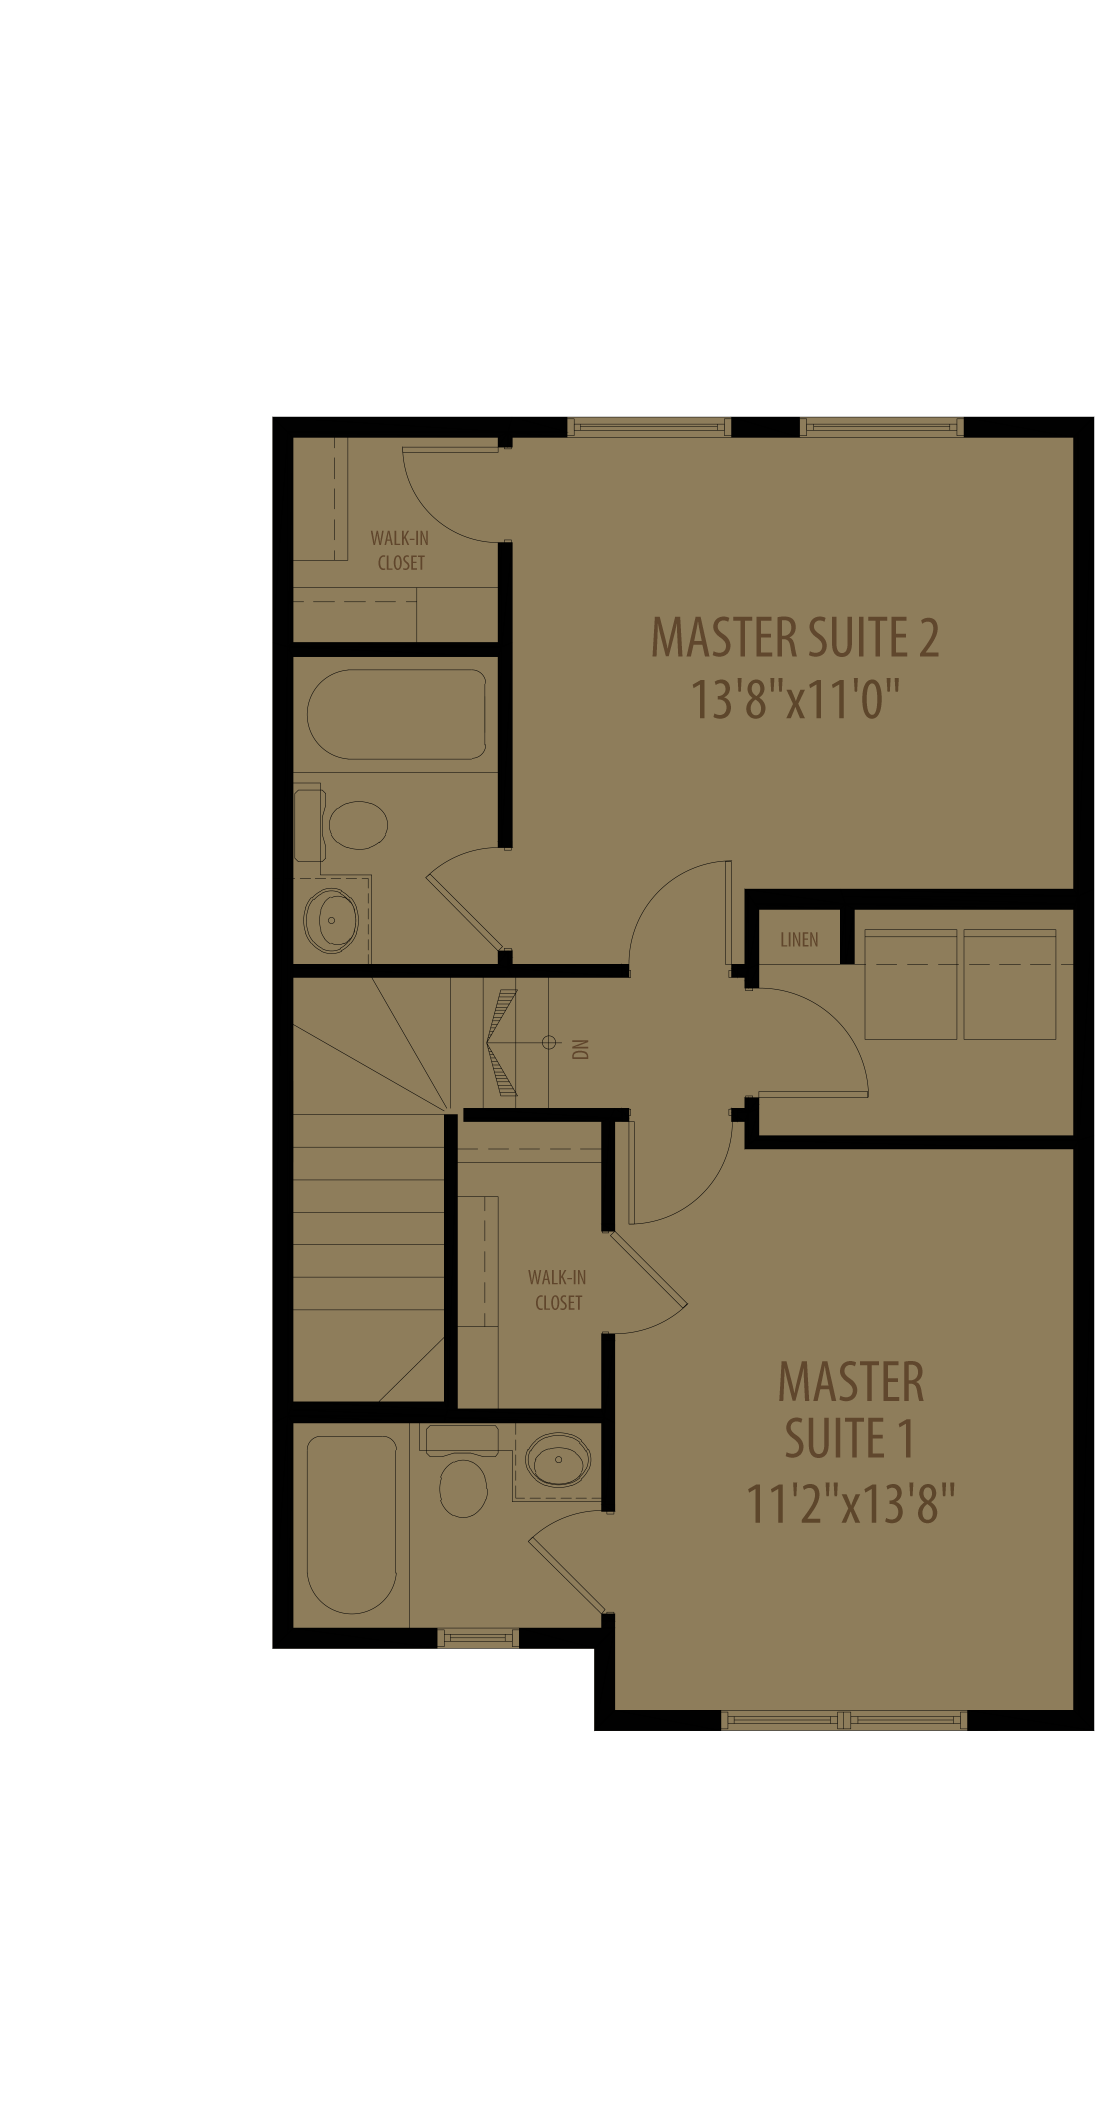 Dual Master Suites With Laundry